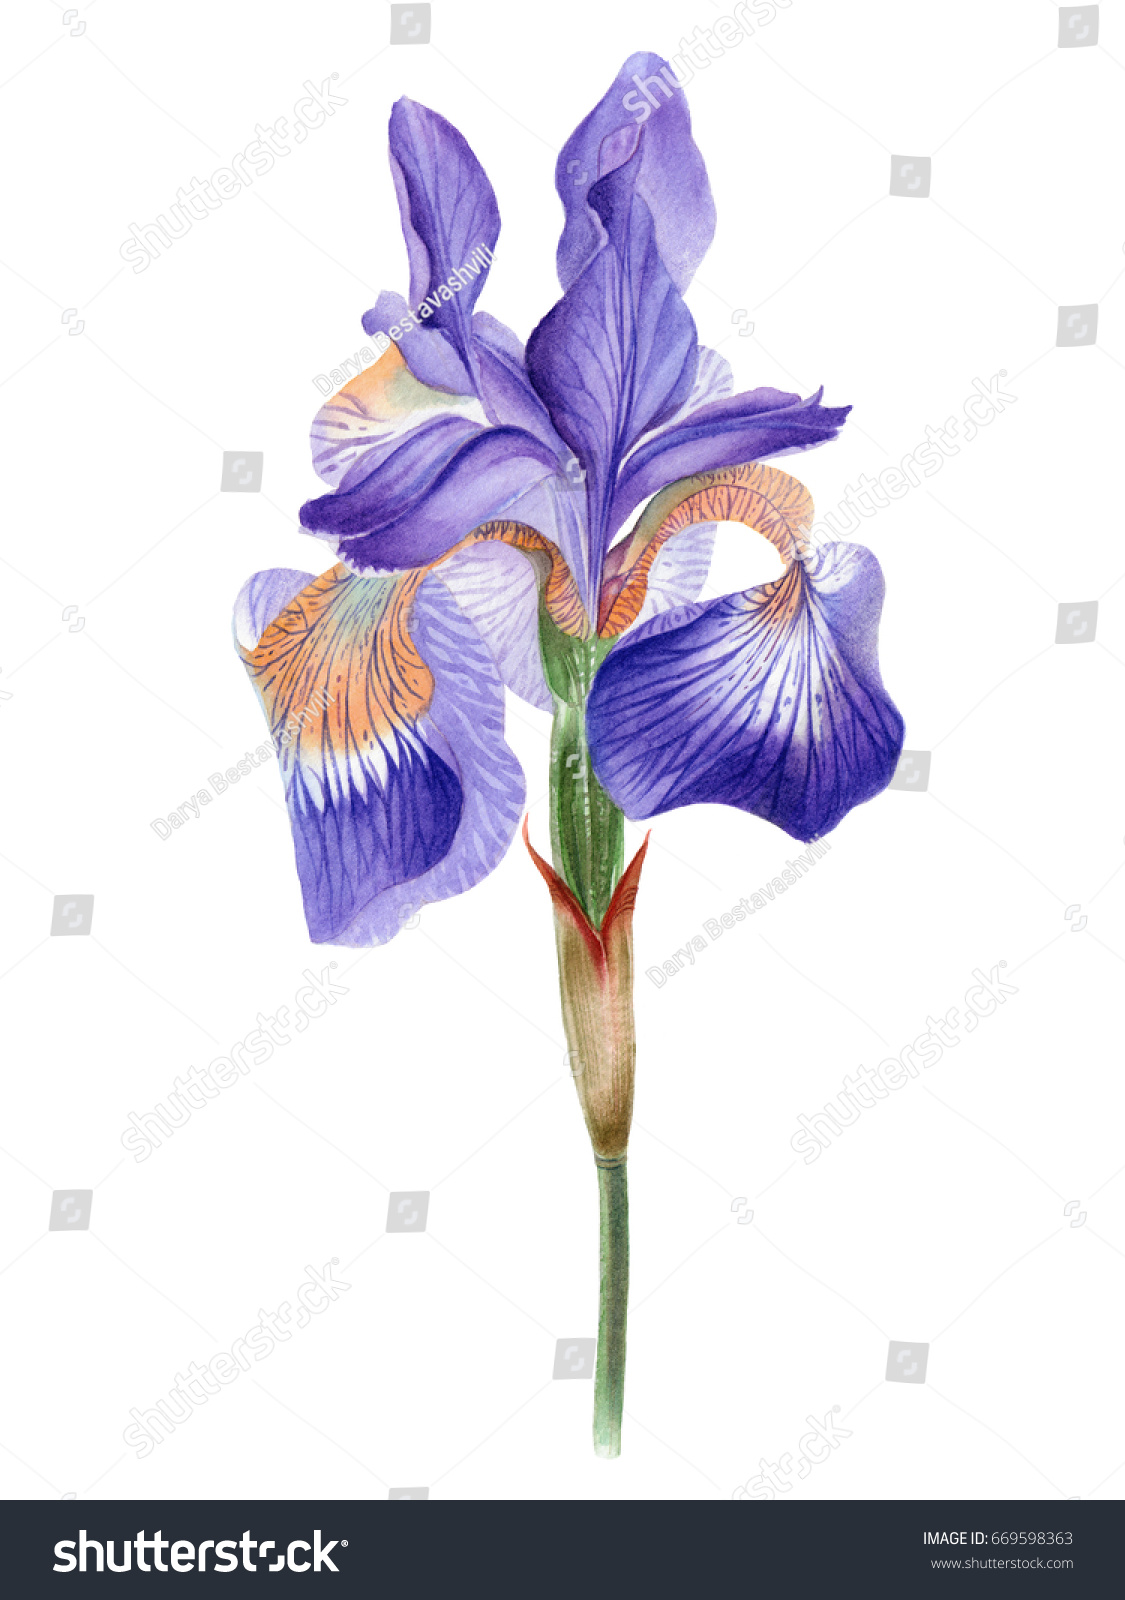 Watercolor hand painted iris flower can be used as romantic watercolor hand painted iris flower can be used as romantic background for web pages wedding invitations greeting cards postcards textile design izmirmasajfo